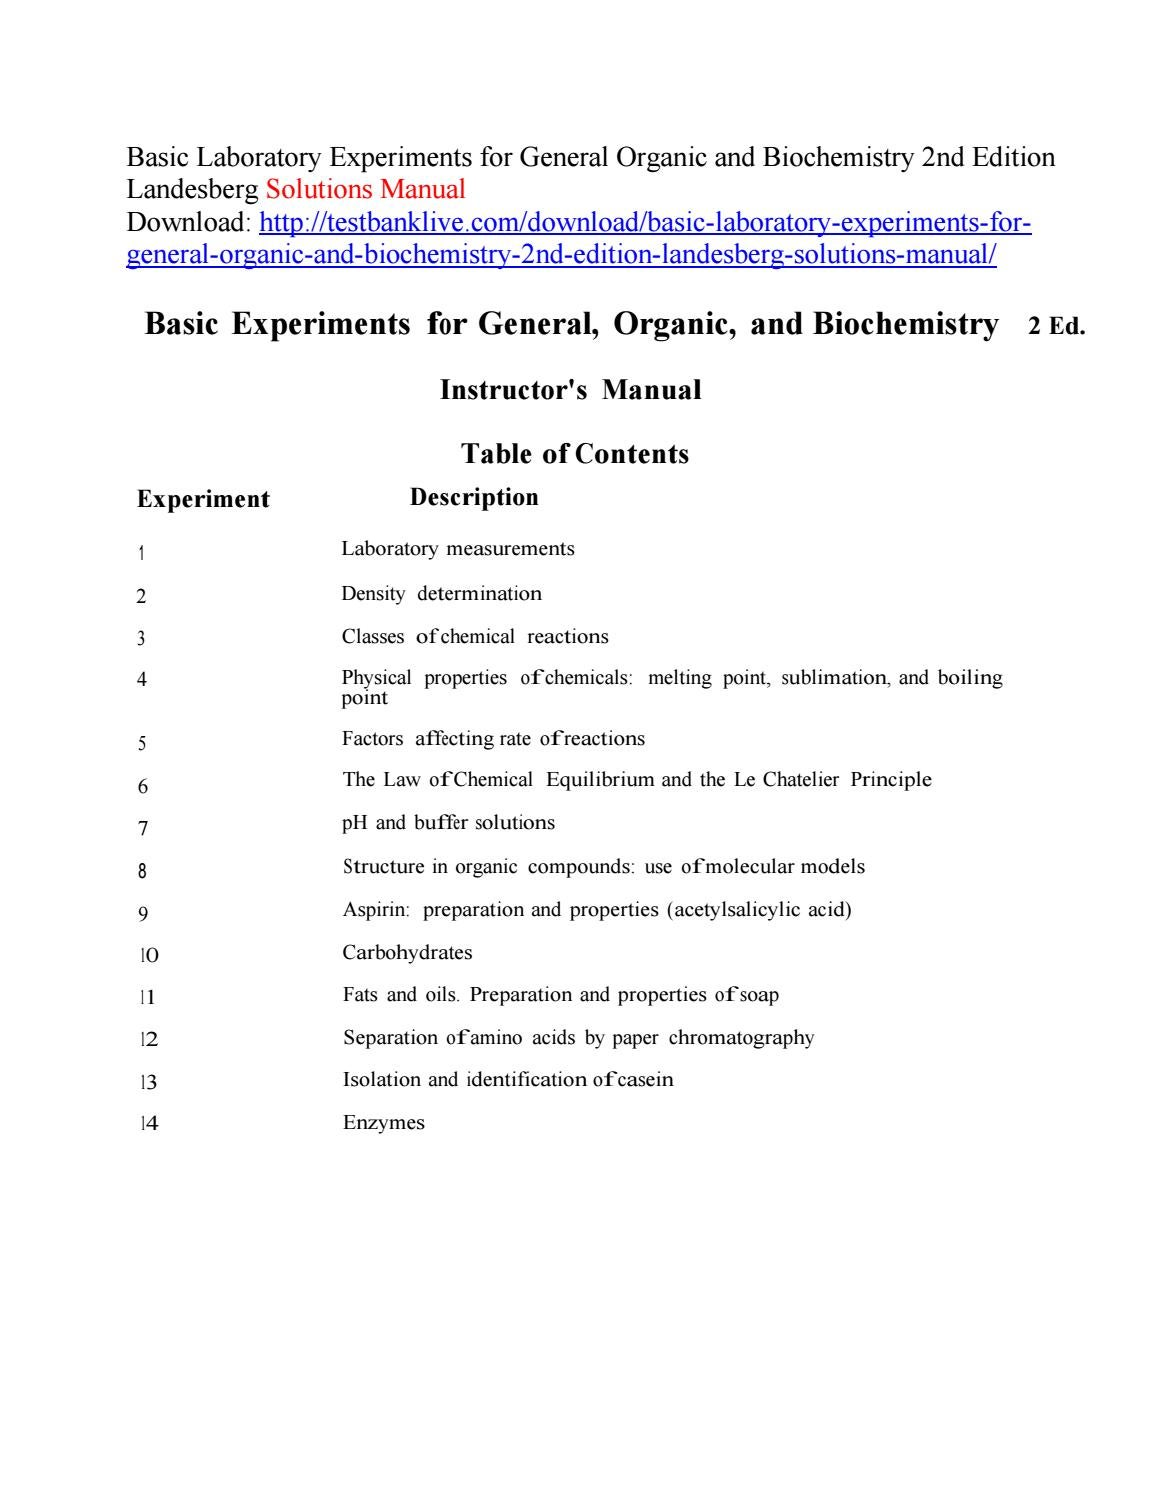 Basic laboratory experiments for general organic and biochemistry 2nd  edition landesberg solutions m by vzzz - issuu